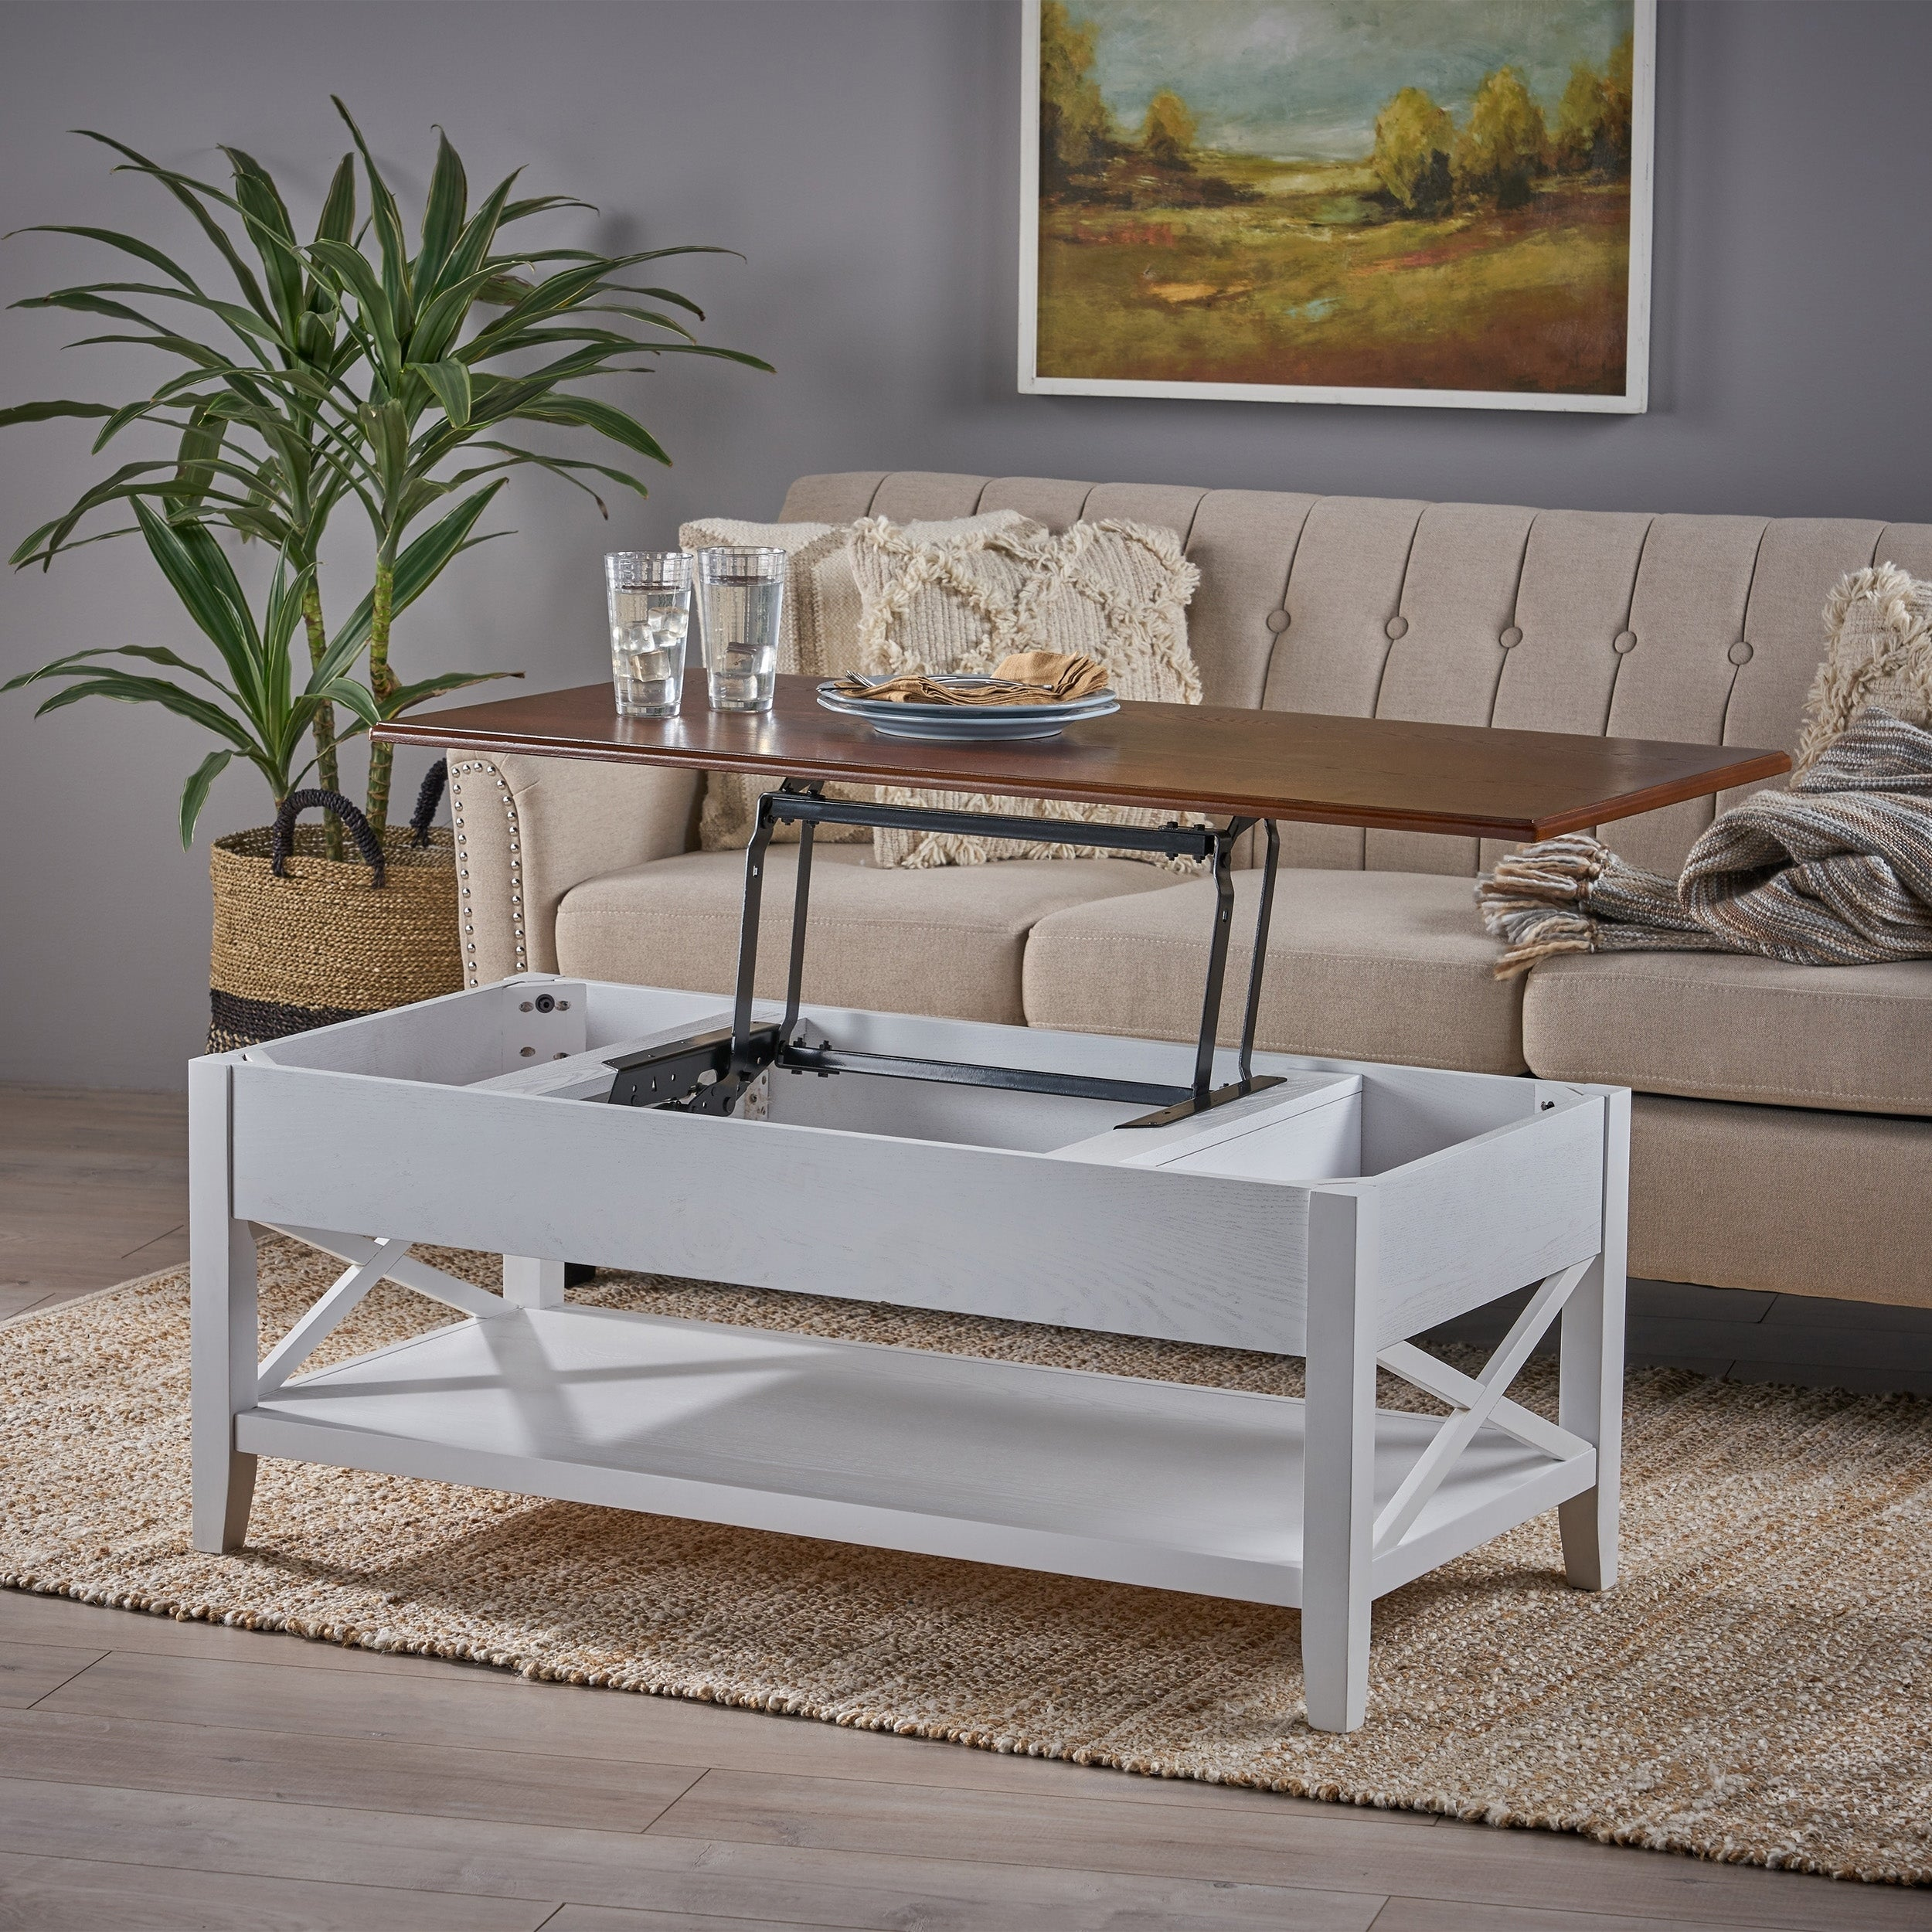 - Shop Decatur Farmhouse Faux Wood Lift Top Coffee Table By